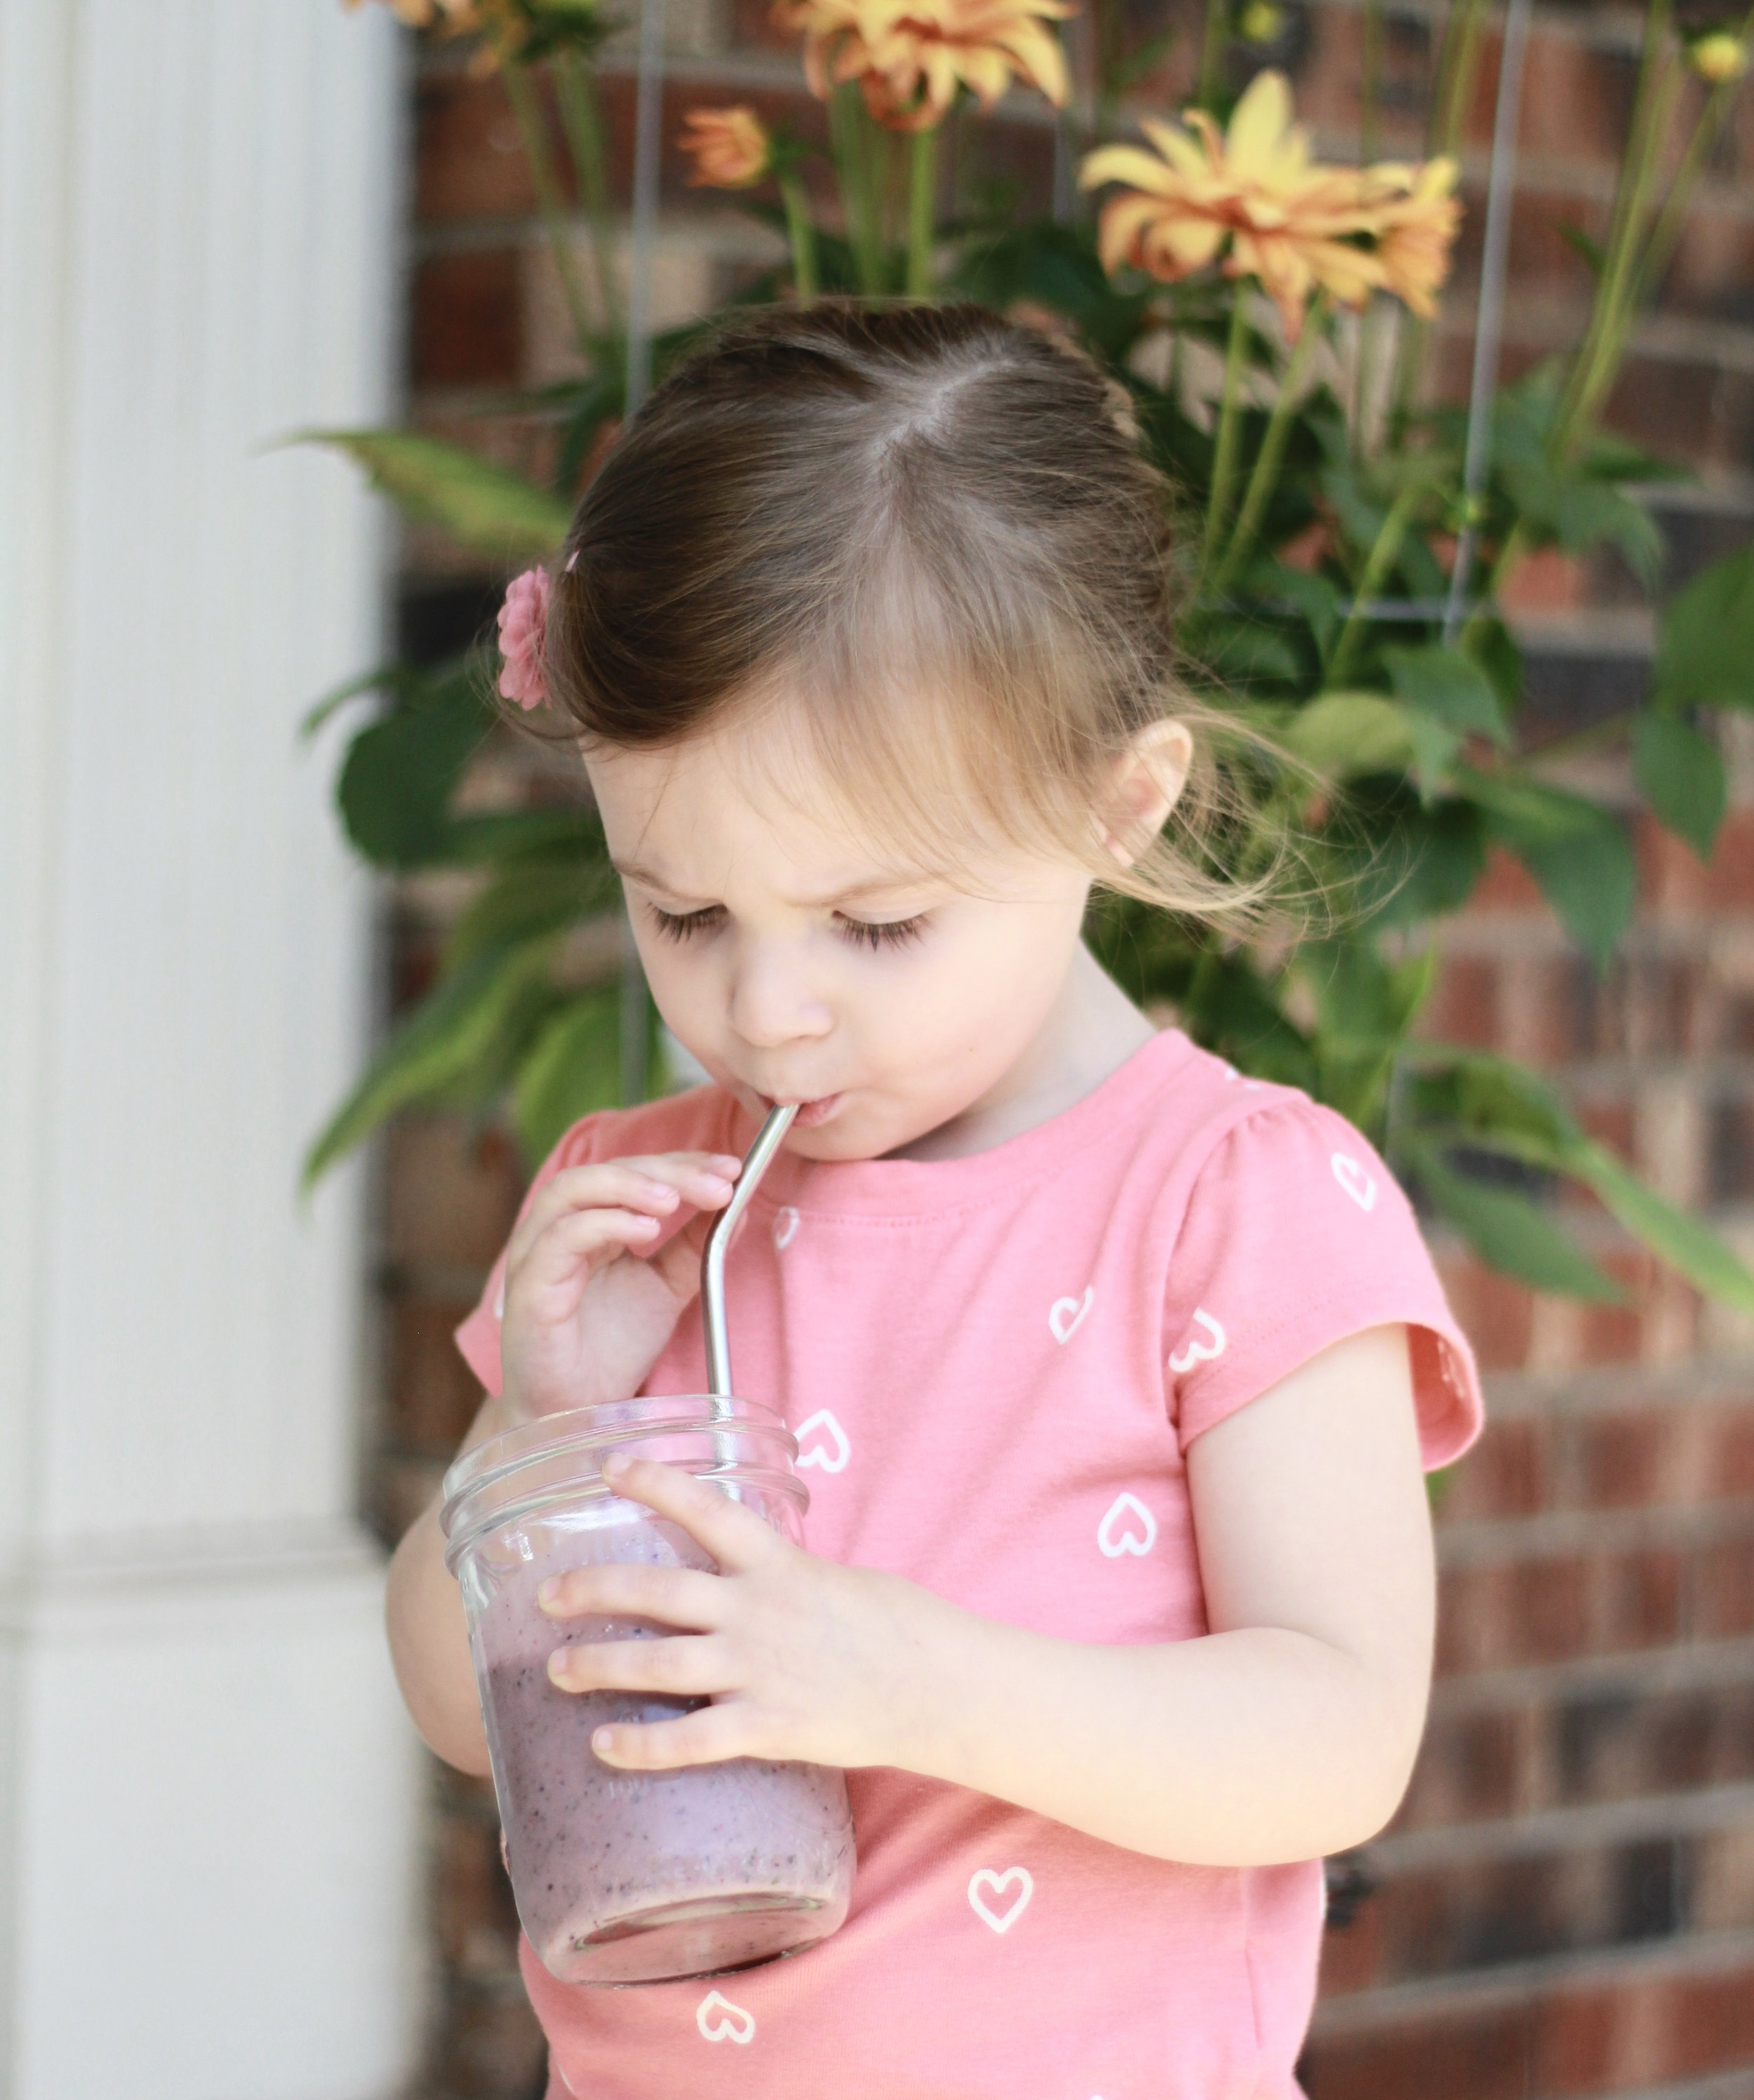 Smoothies vs. Juicing | Wholesome LLC